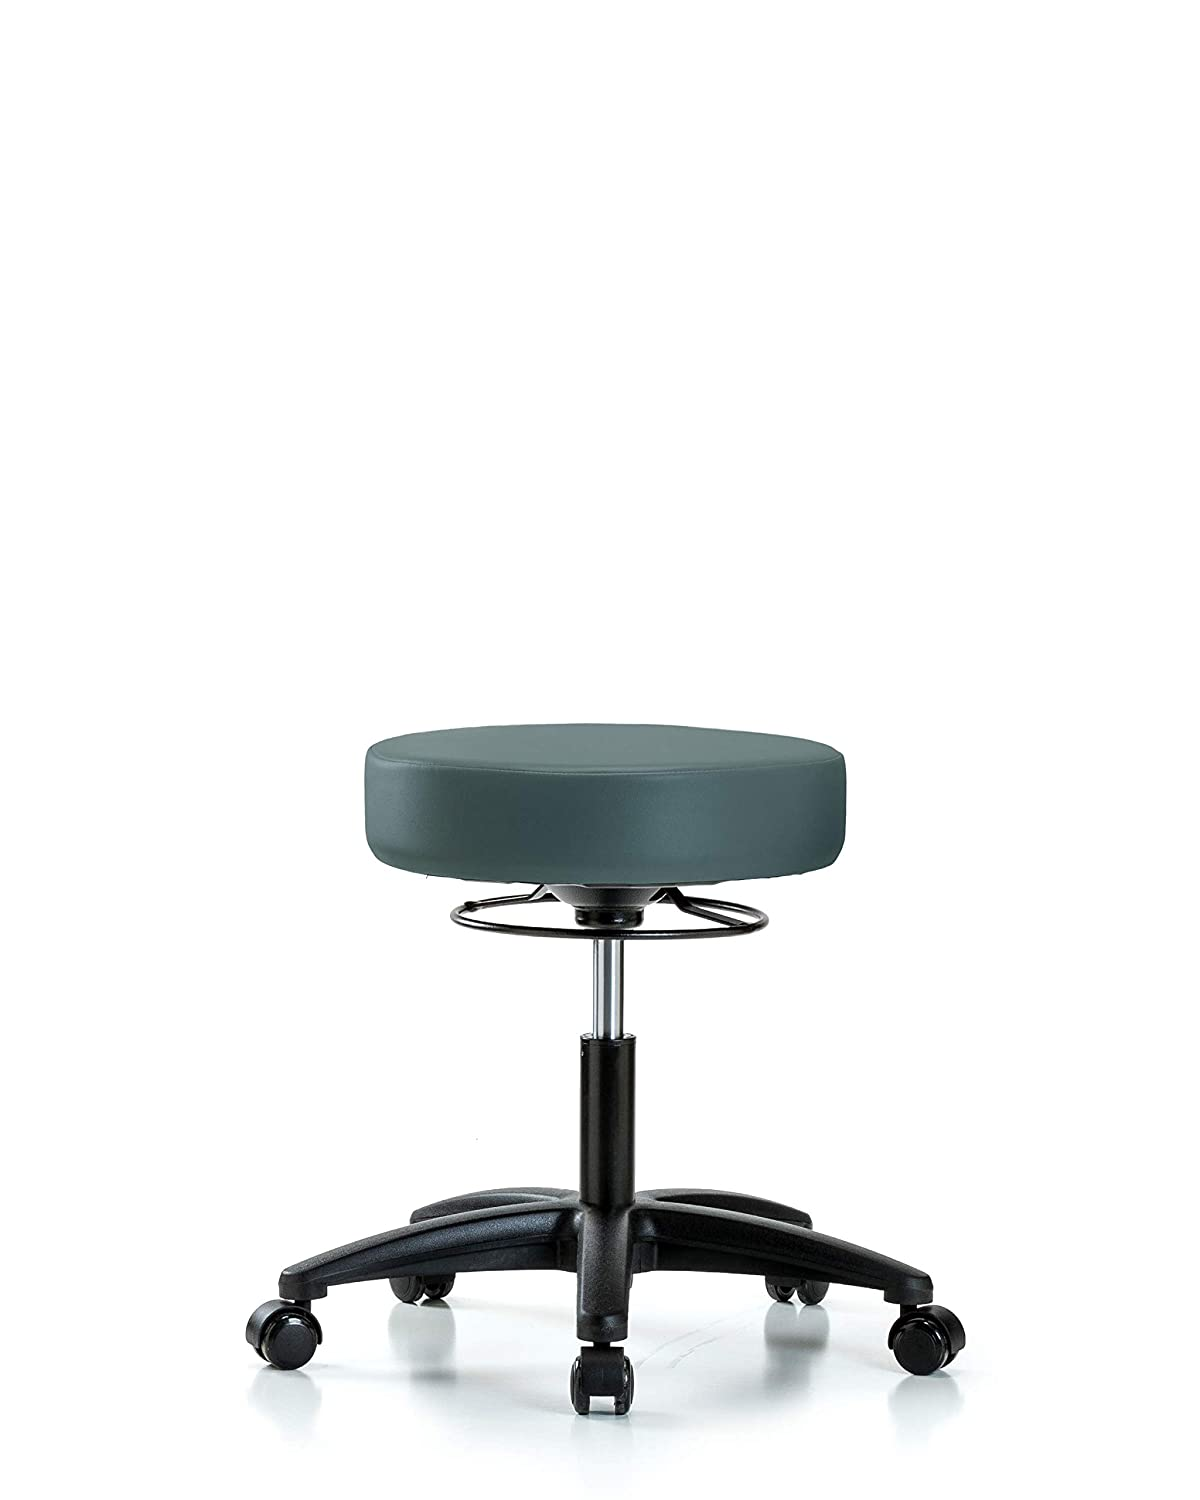 Adjustable Stool for Exam Rooms, Labs, and Dentists with Wheels - Desk Height, Colonial Blue